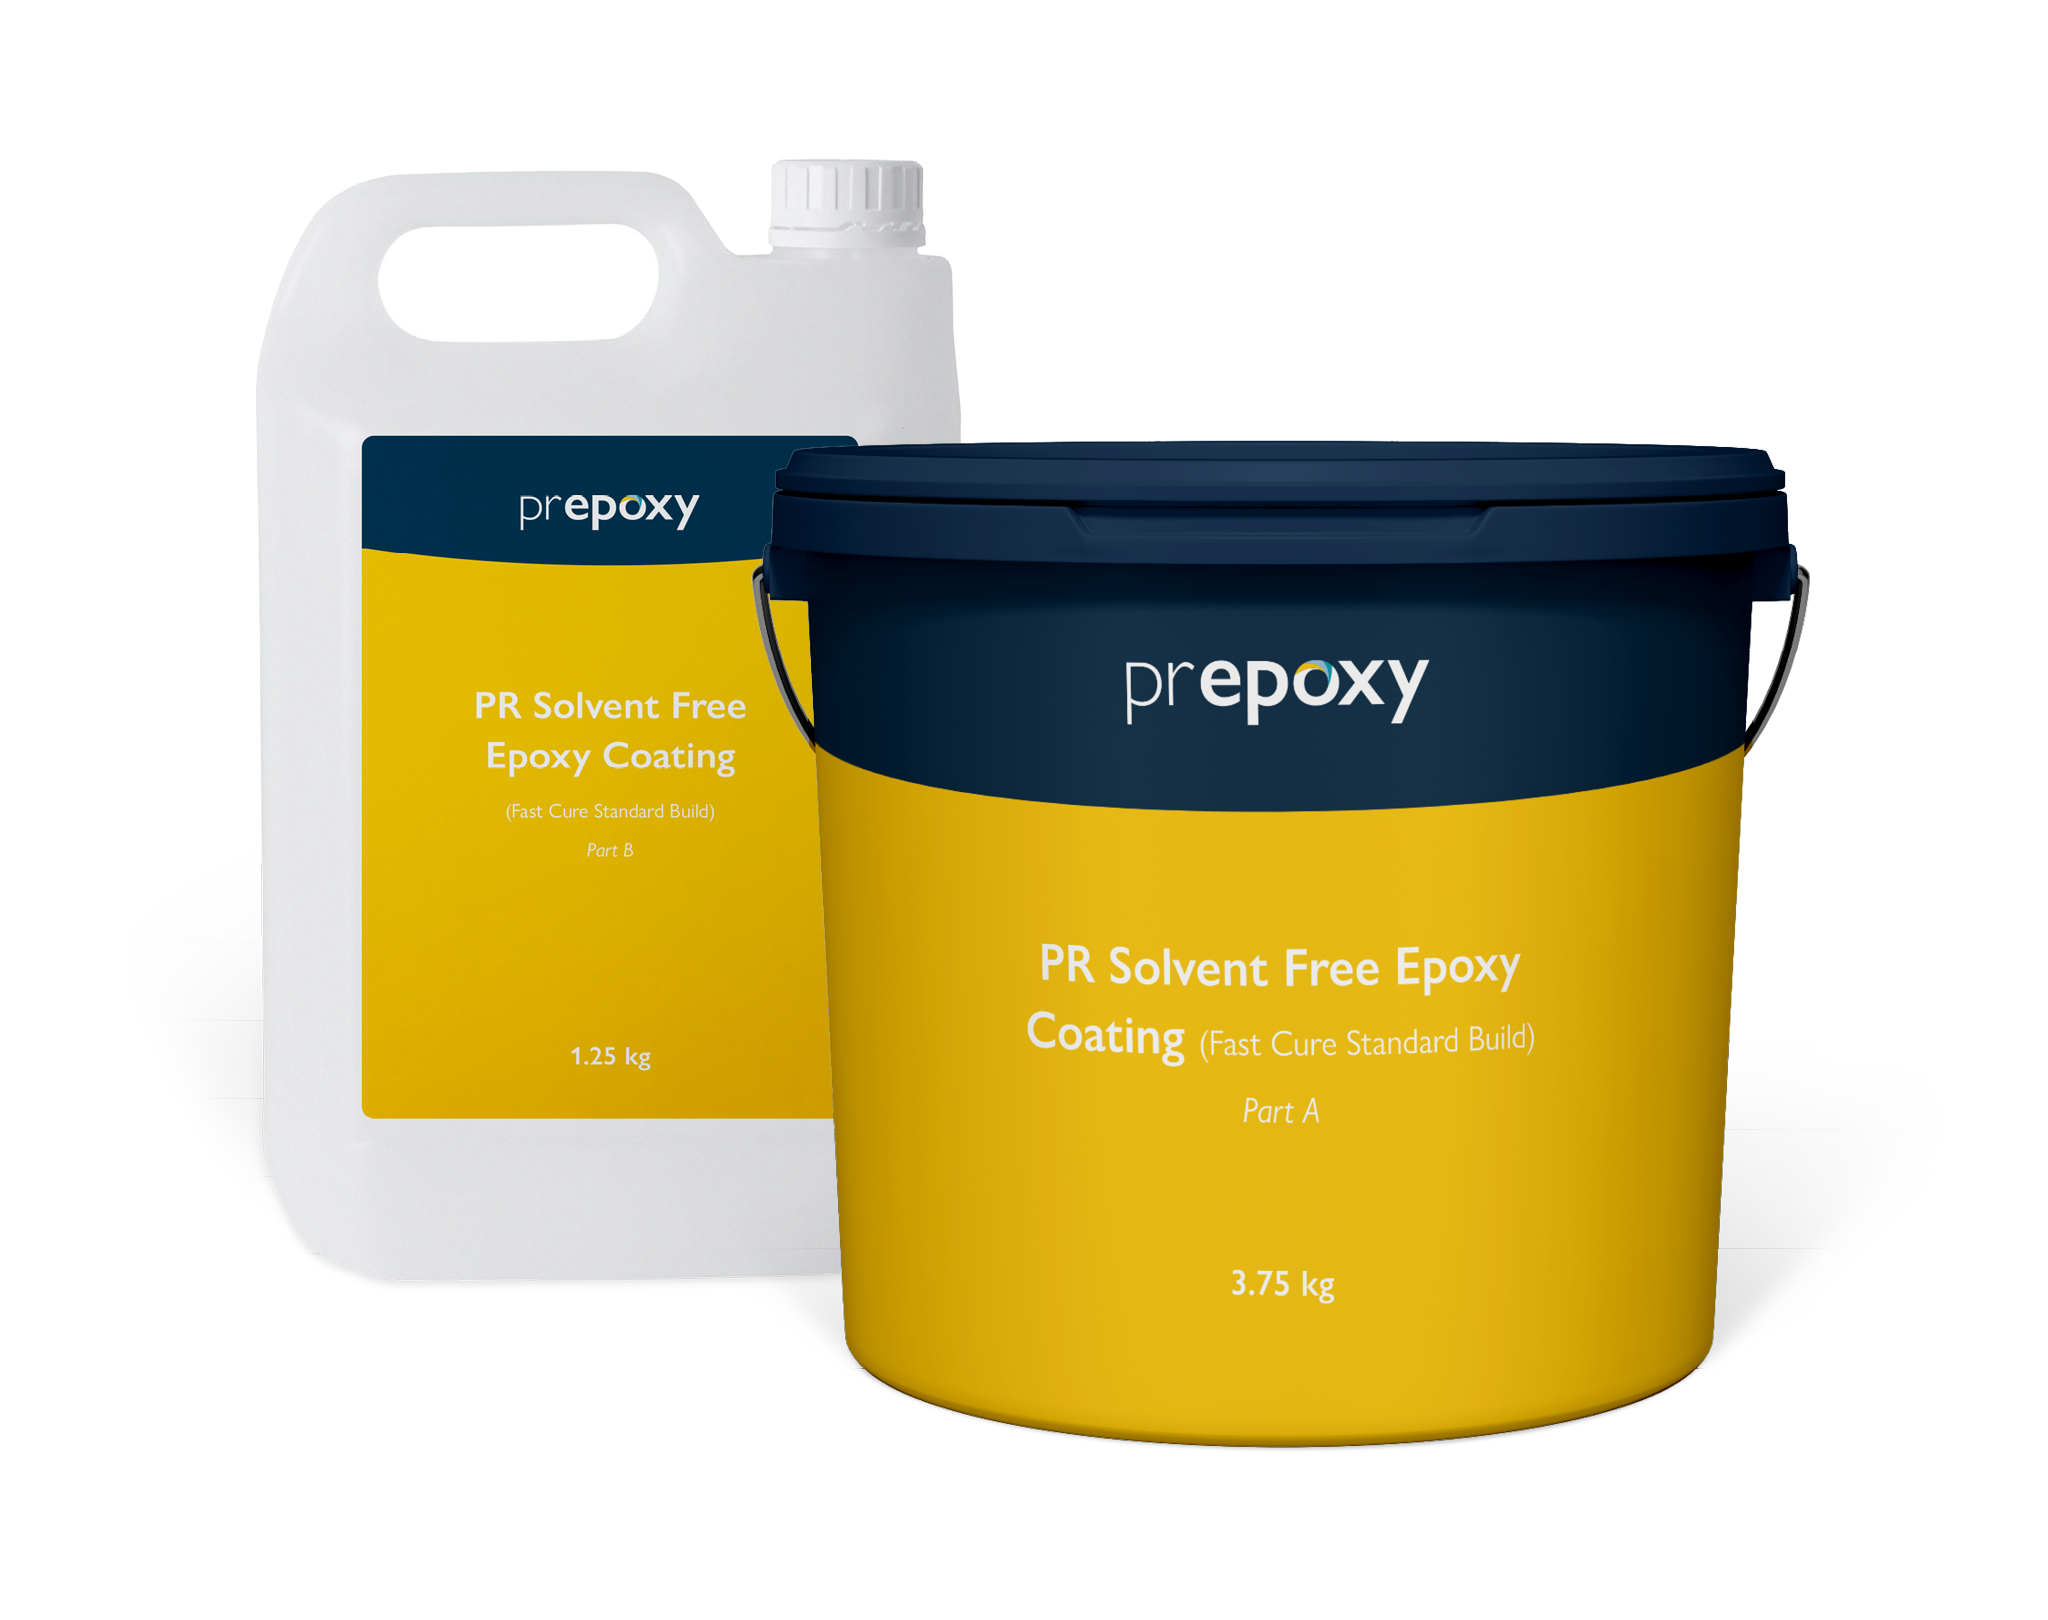 PR Solvent Free Epoxy Coating (Fast Cure Standard Build)